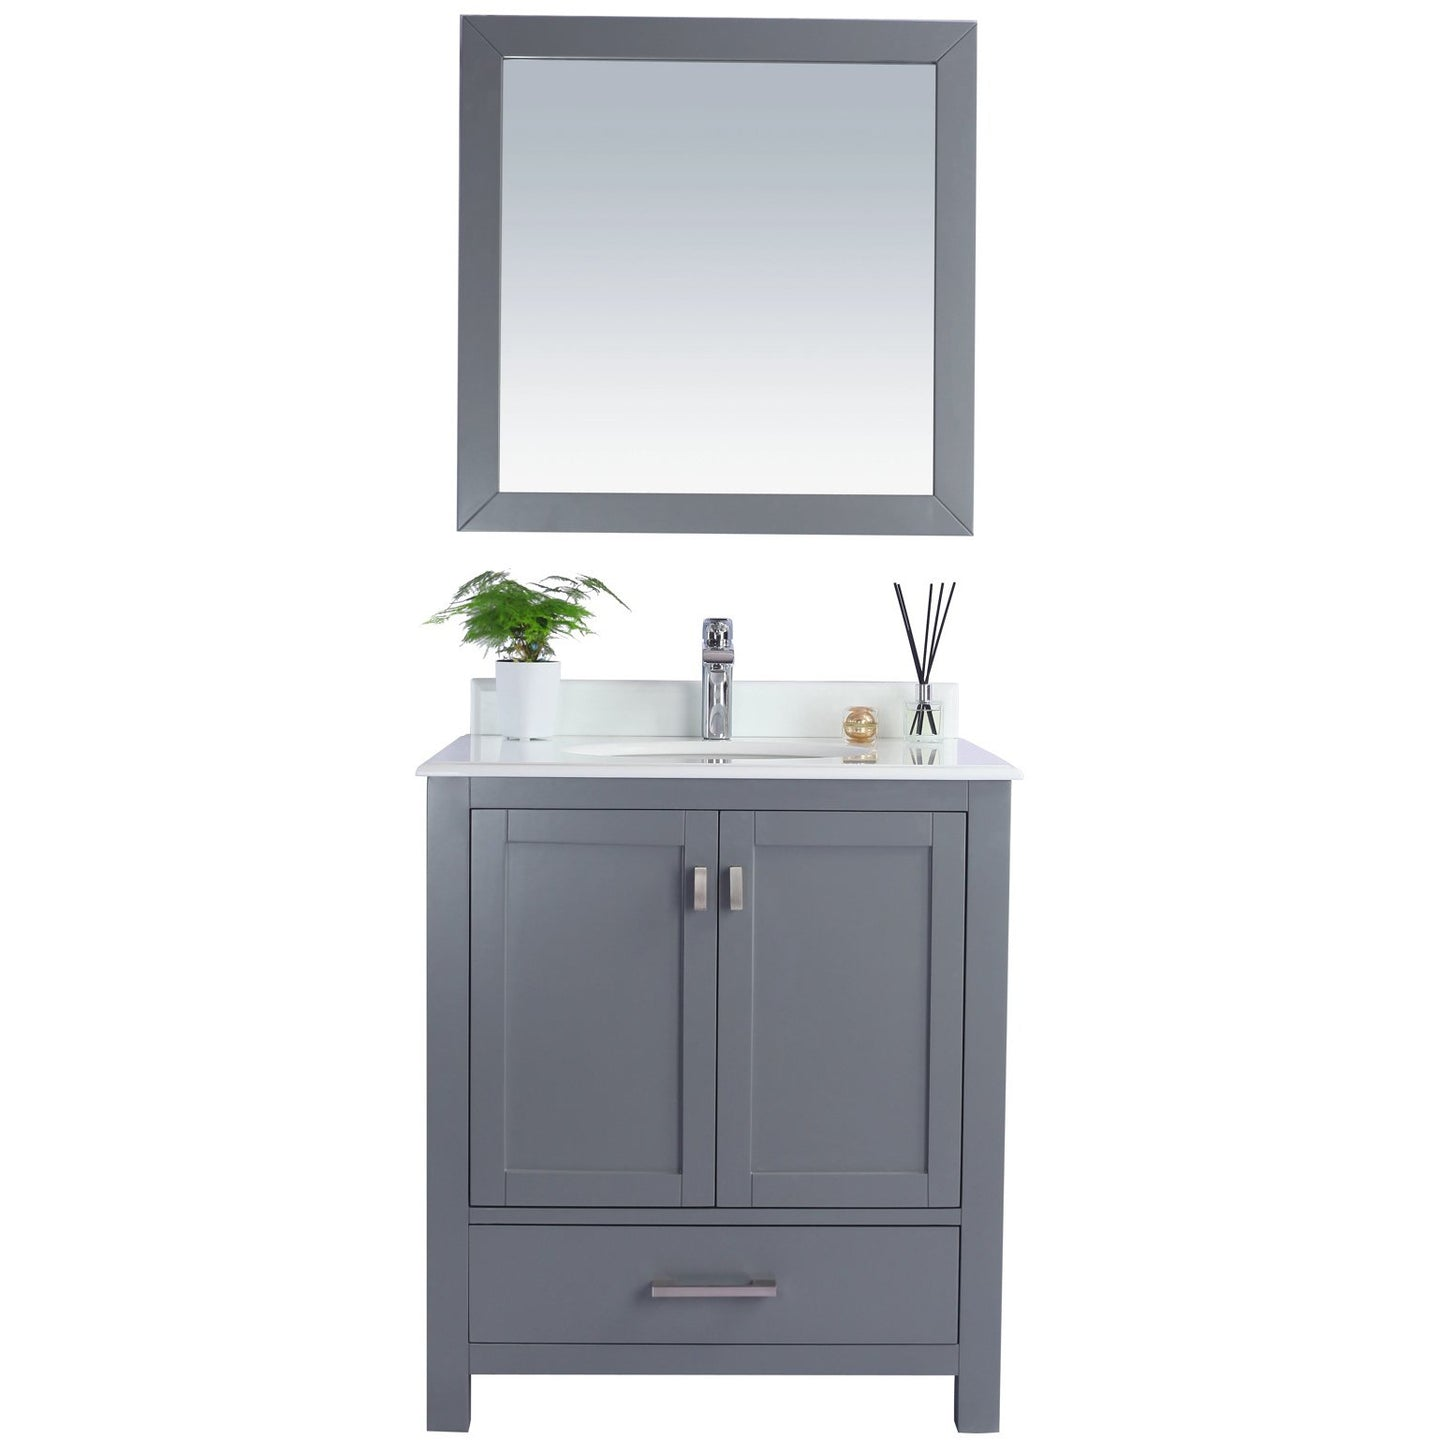 Wilson 30 - Grey Cabinet + Pure White Countertop by Laviva